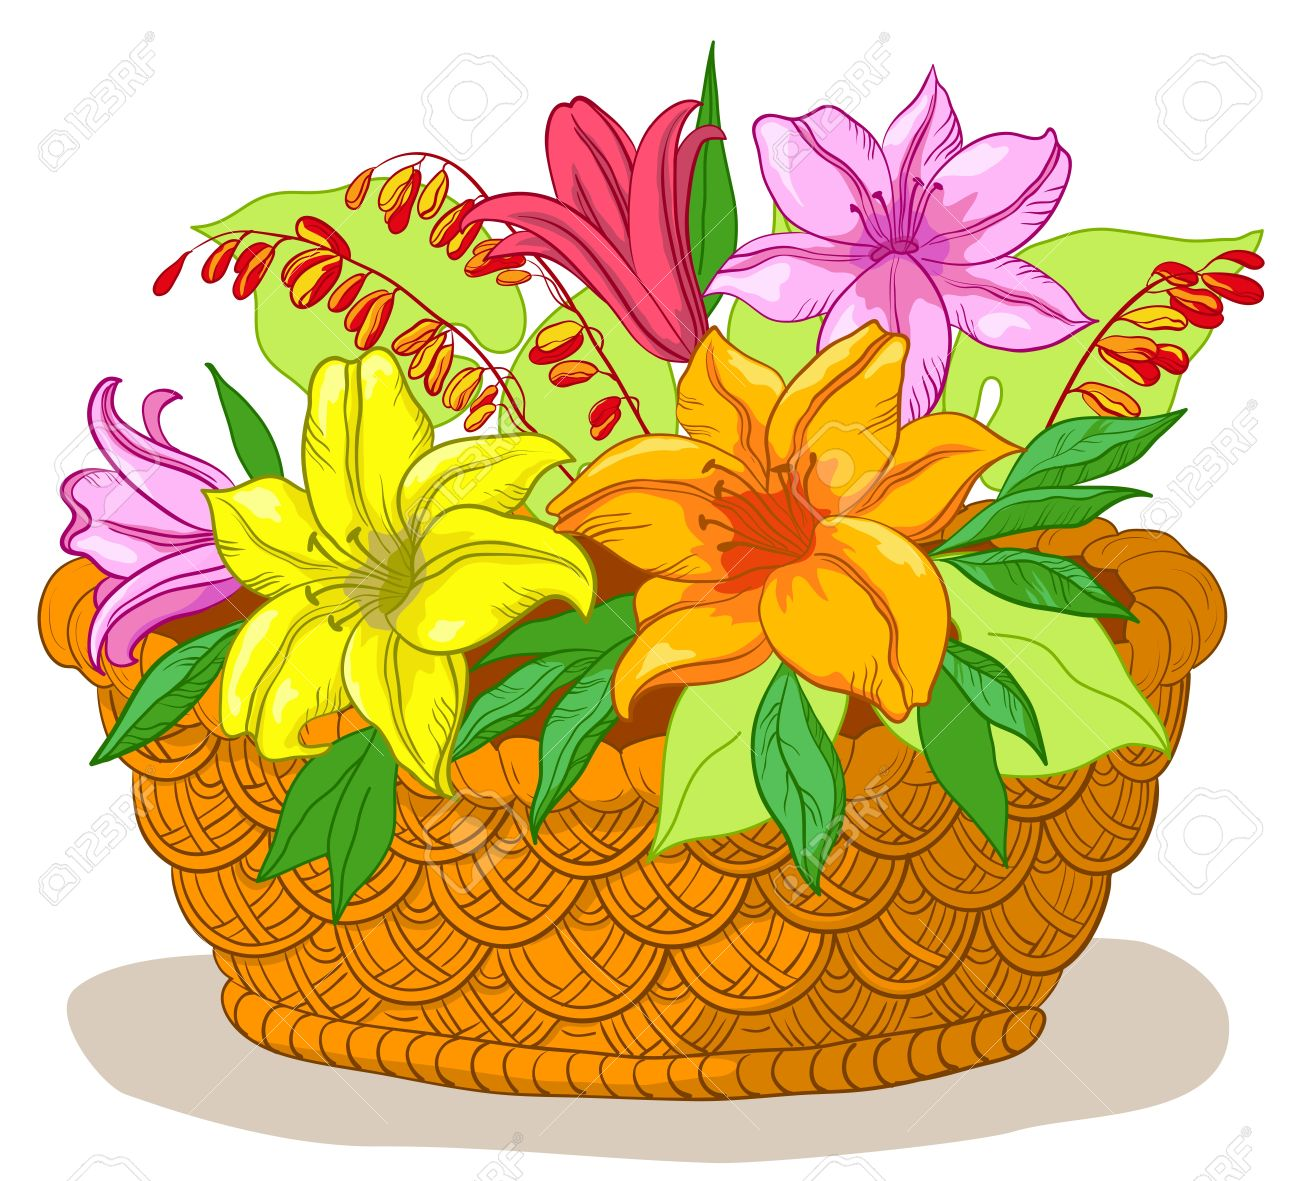 wattled basket with flowers lily and green leaves royalty free